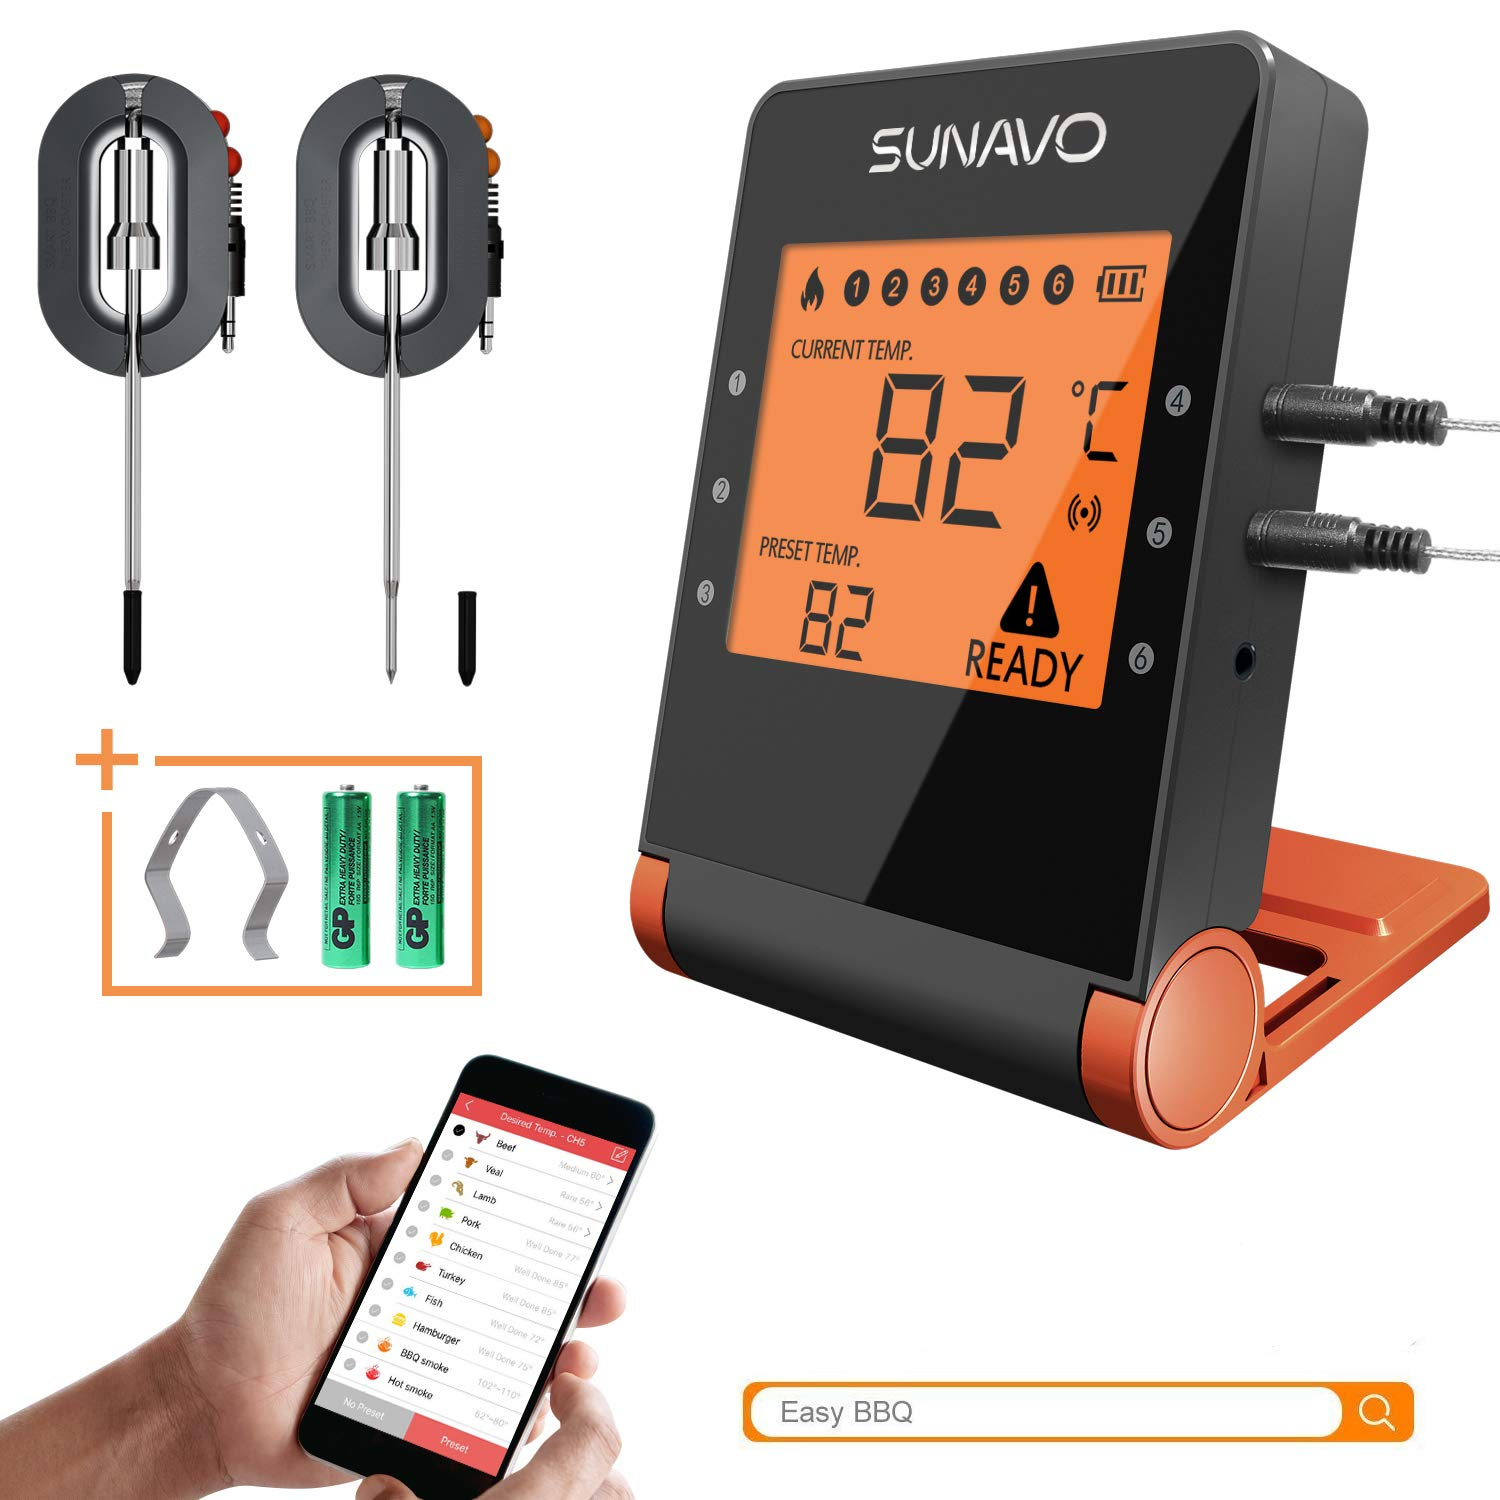 SUNAVO Bluetooth Meat Thermometer for Grilling APP Controlled Remote Smoker with 6 Probe Port by sunavo